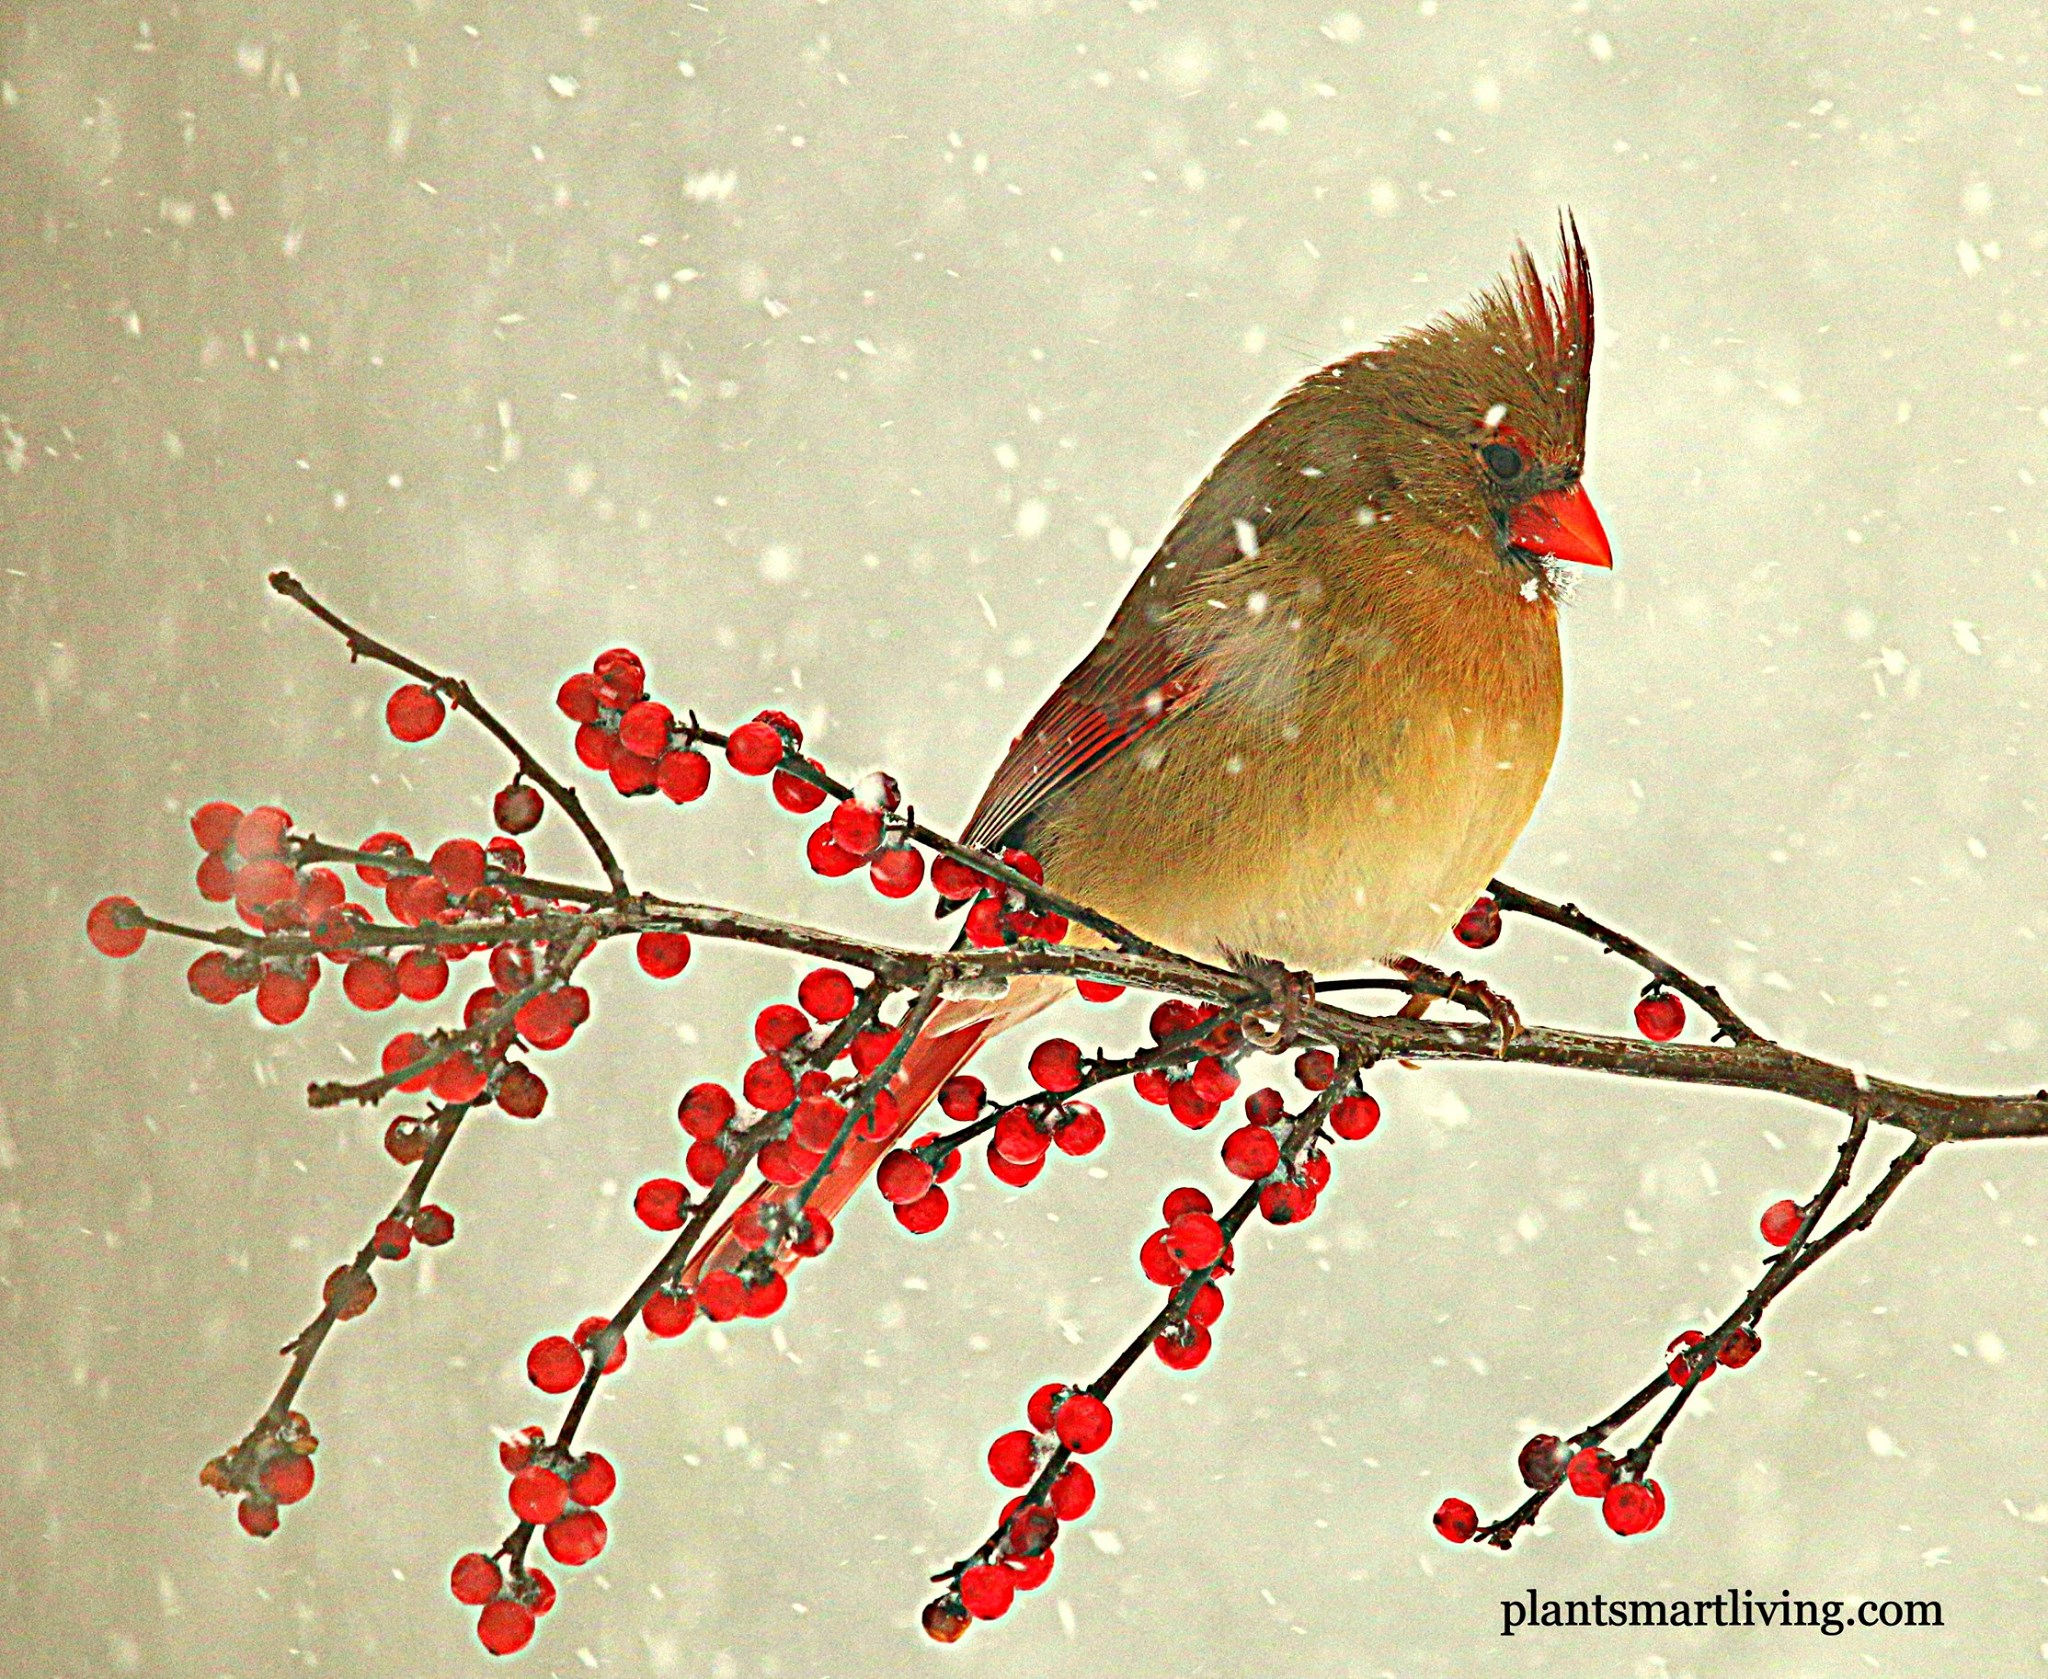 female-northern-cardinal-during-blizzard-2016